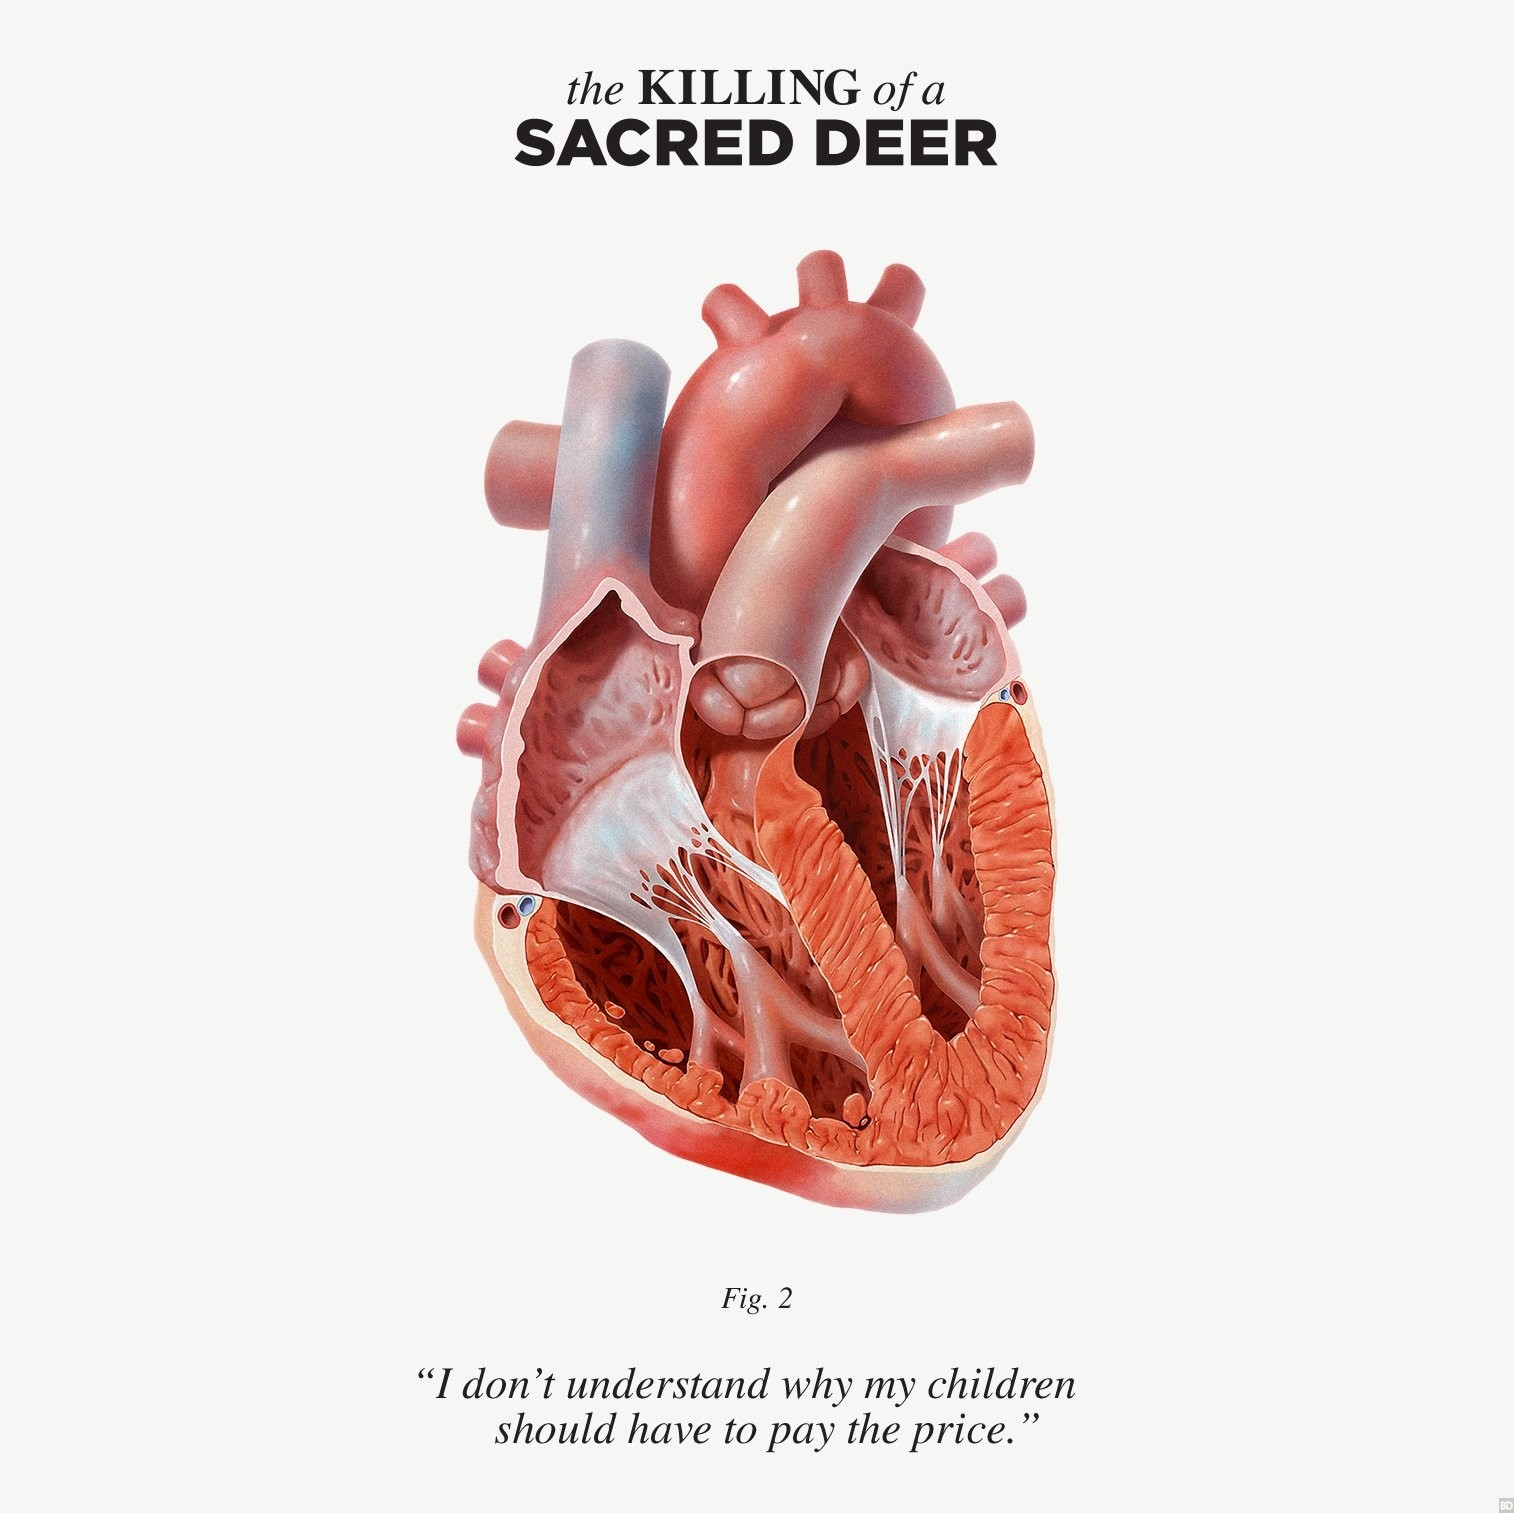 The Killing Of A Sacred Deer Poster Exposes Its Heart